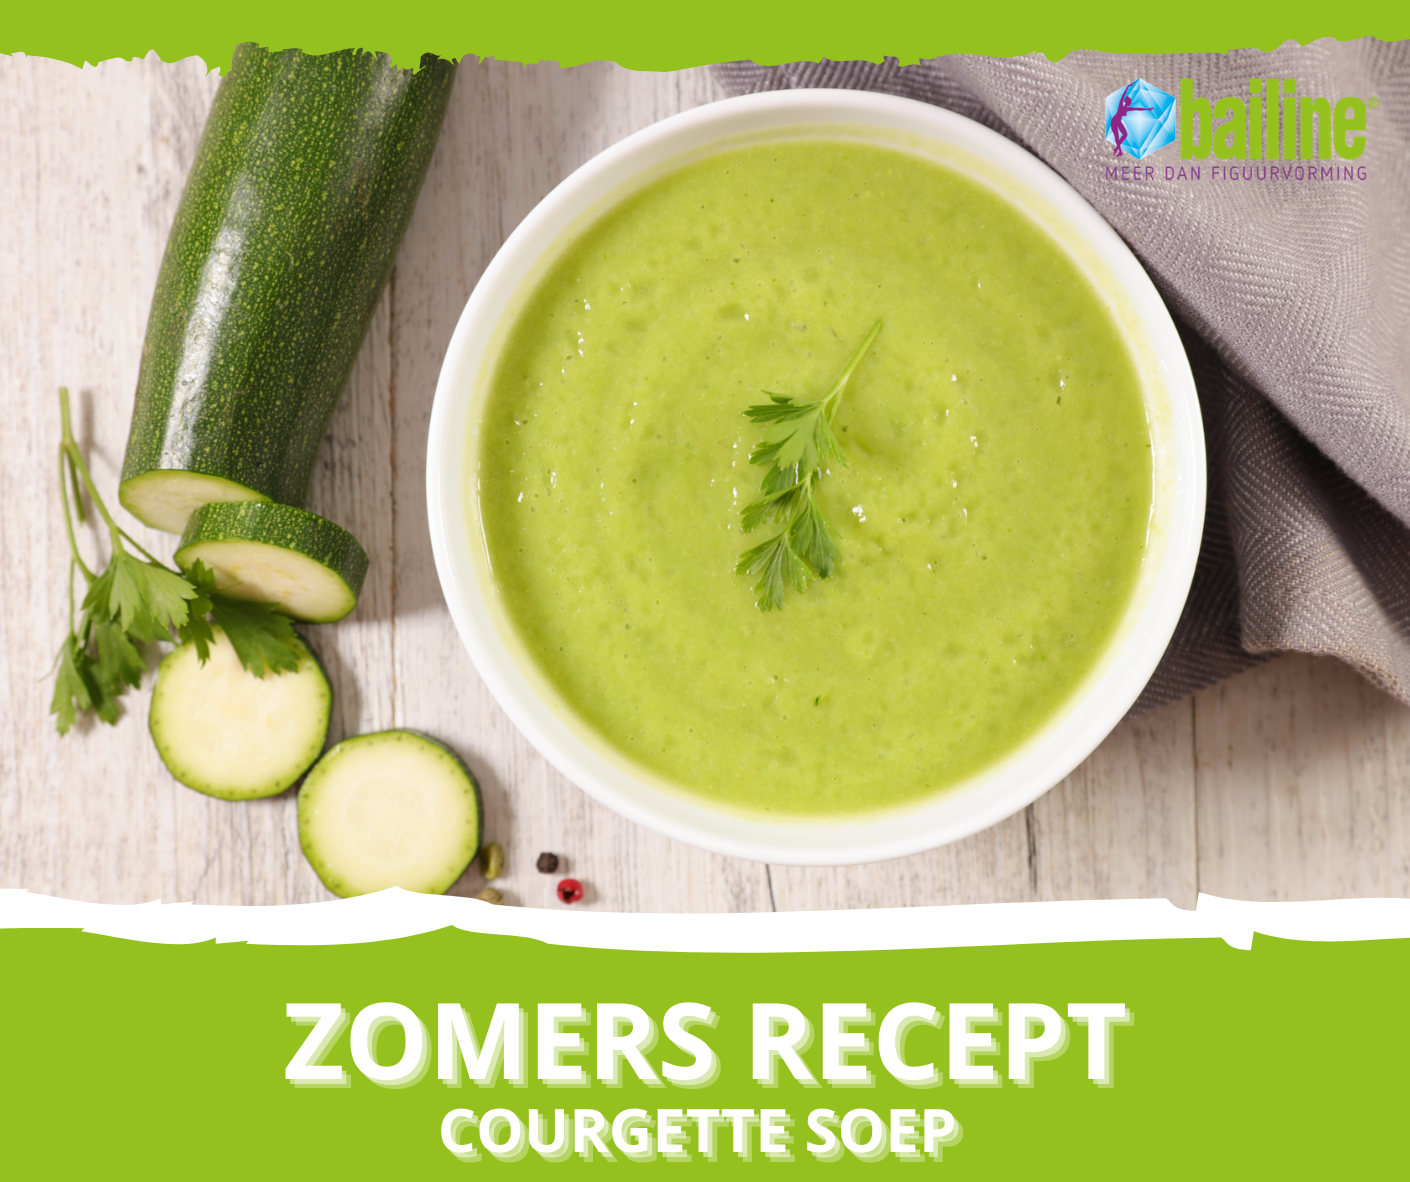 Zomers recept: Courgette soep